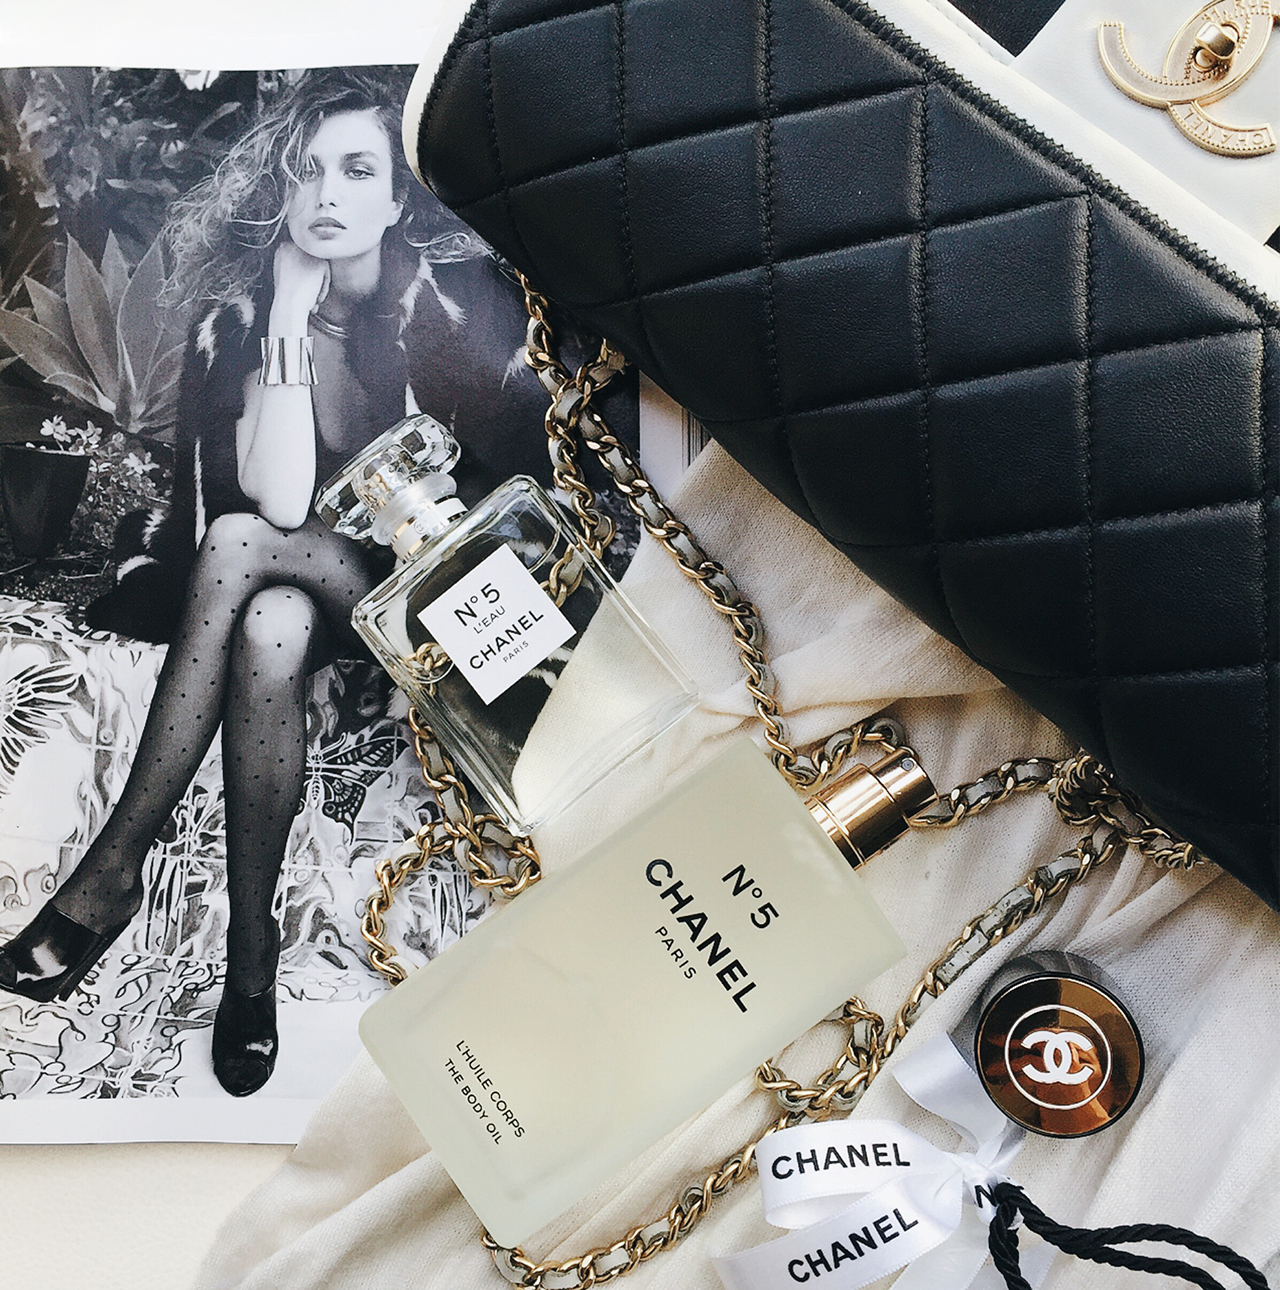 Chanel N°5 L'eau & The Body Oil